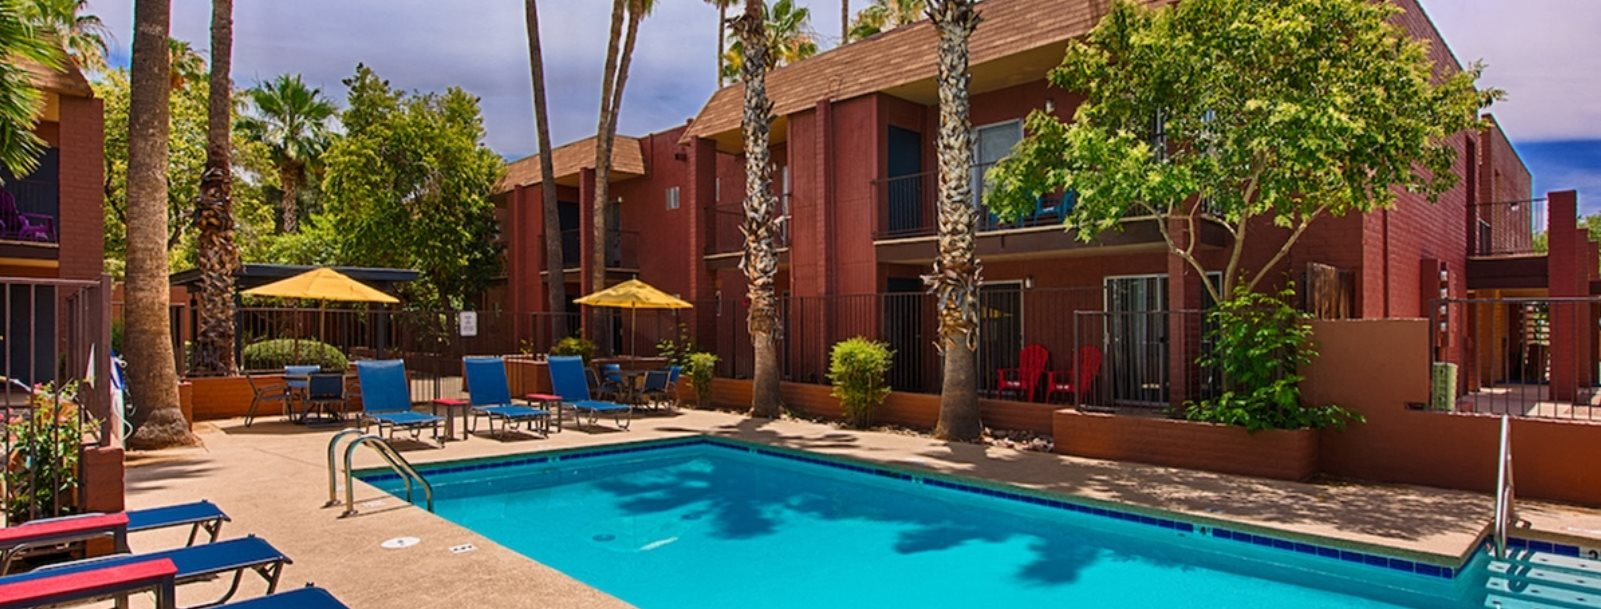 Sparkling Swimming Pool at Fountain Plaza Apartments, Tucson, 85712